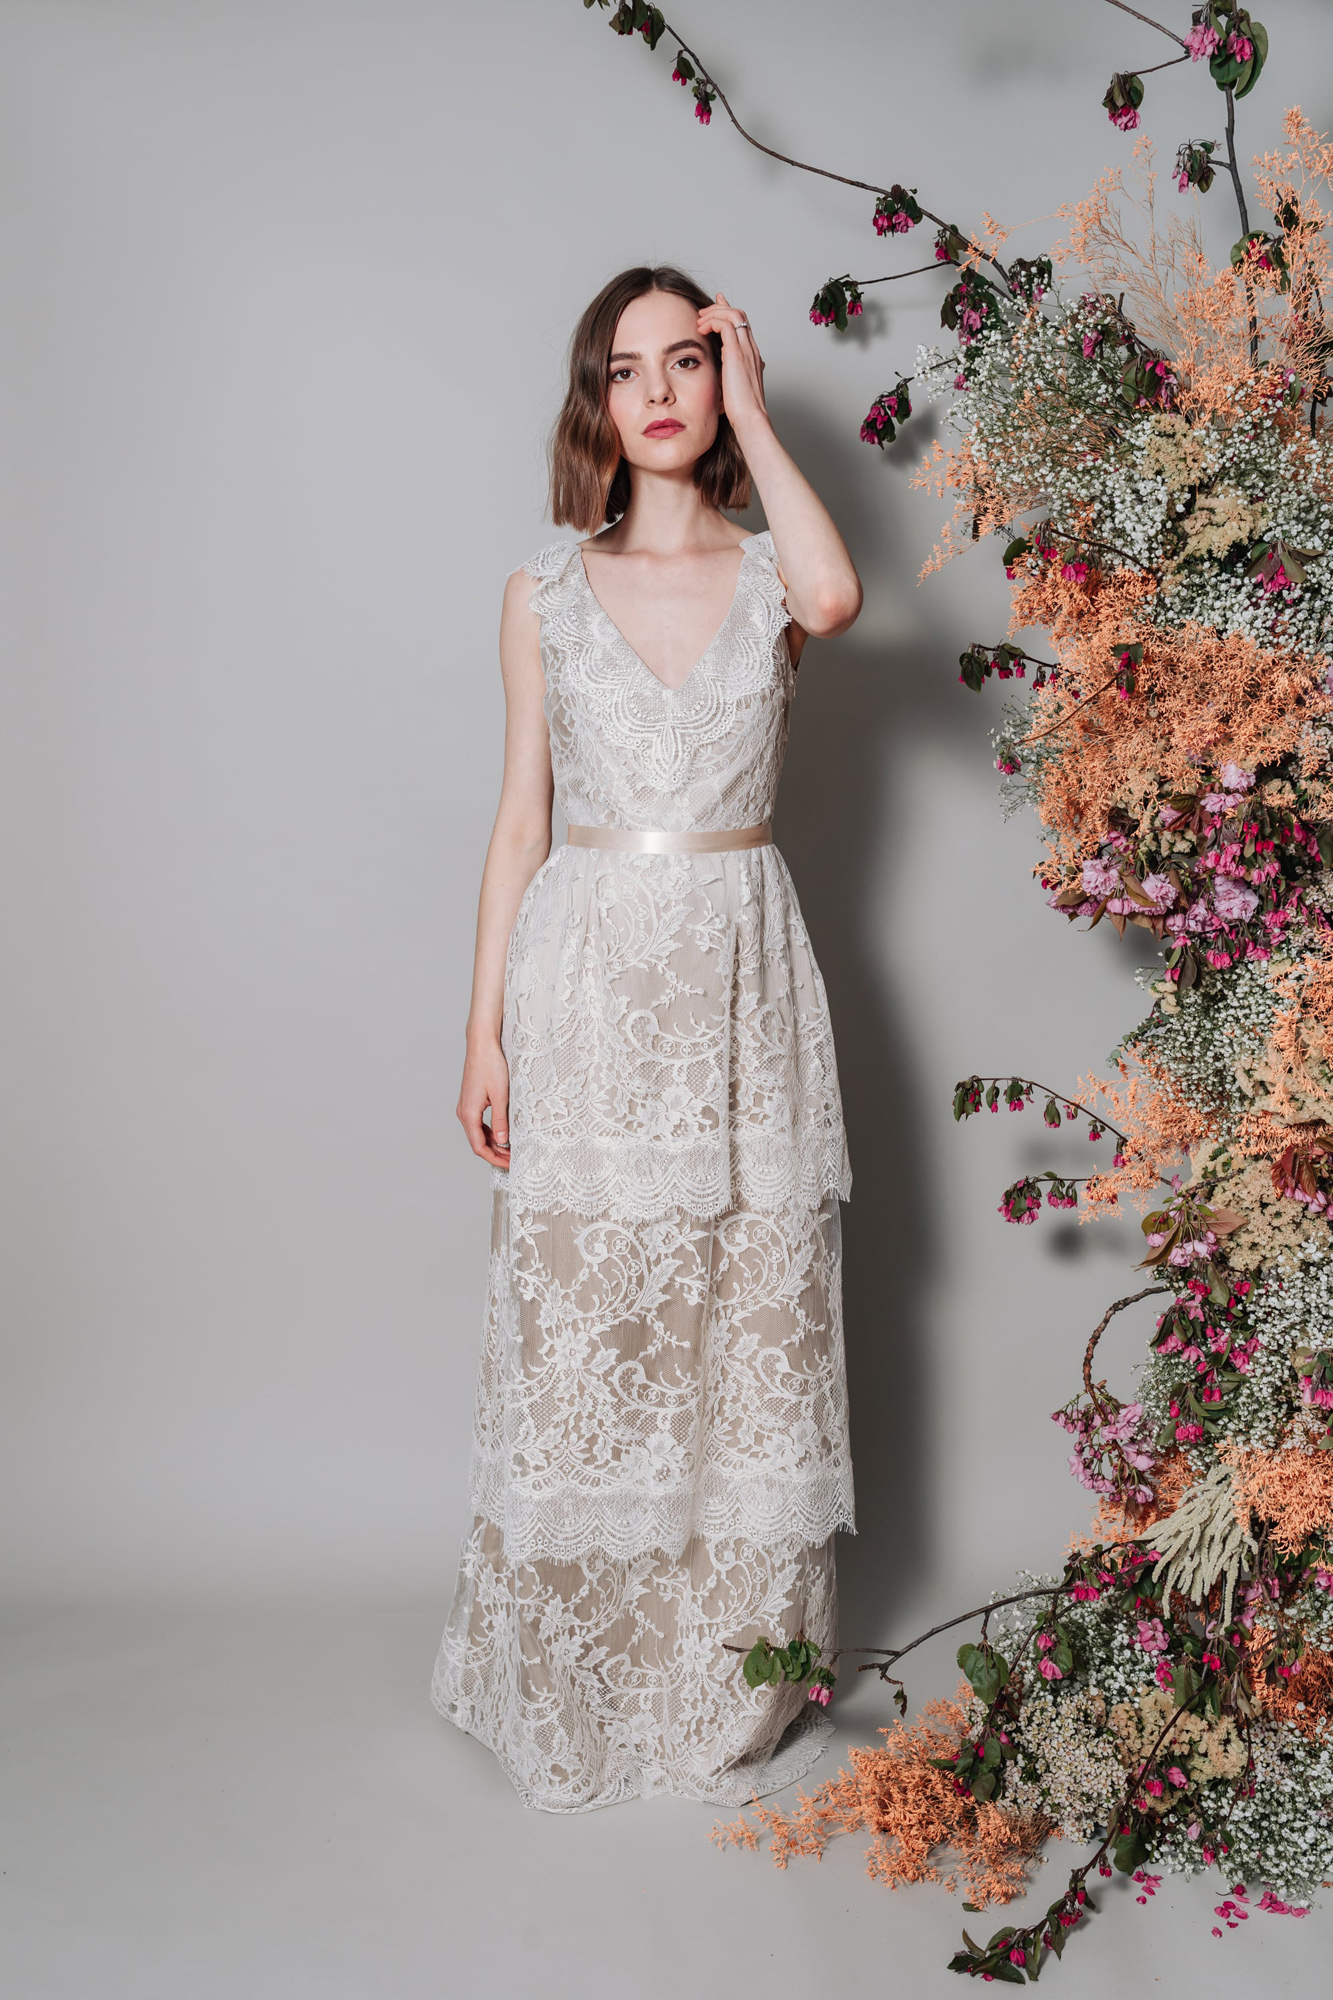 Kate-Beaumont-Sheffield-Wild-Lupin-Bohemian-Lace-Wedding-Gown-Tiered-Skirt-2.jpg